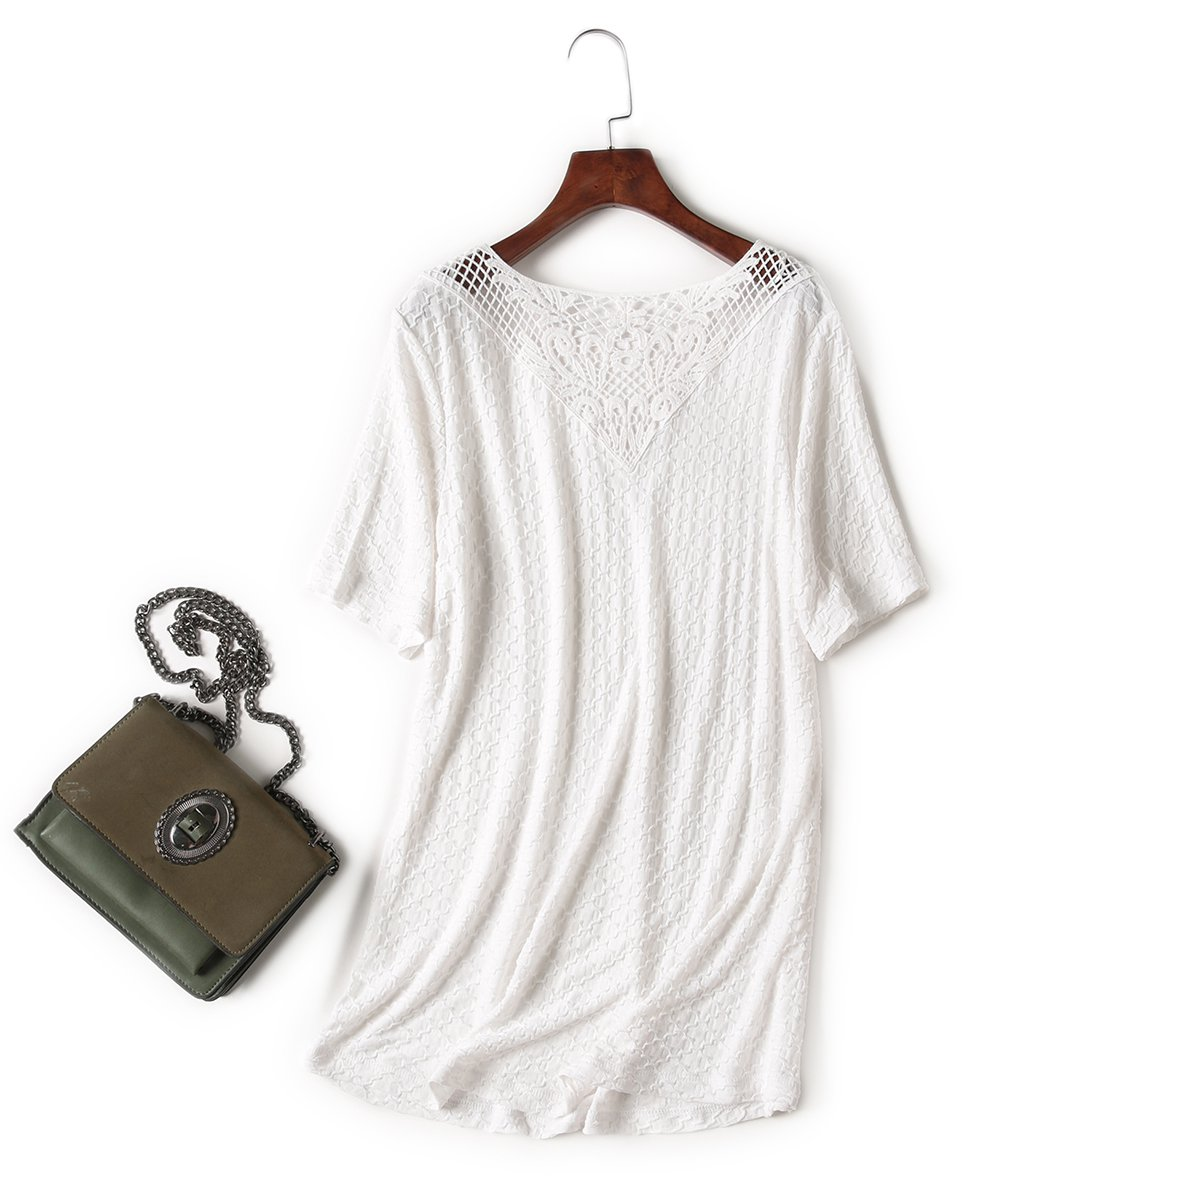 Cool, Relaxed And Breathable Mesh T-Shirt With Short Sleeves